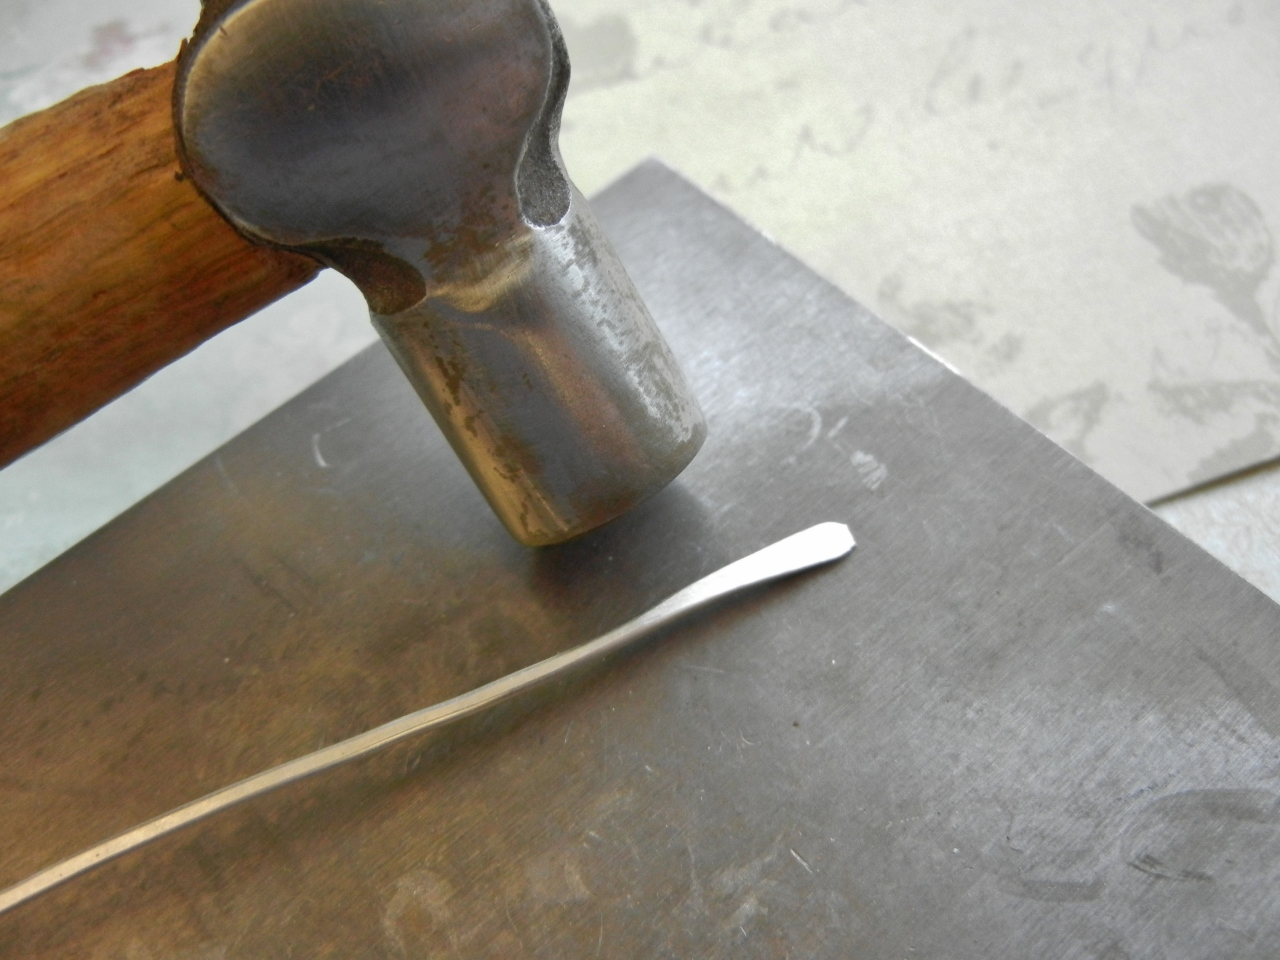 ... ring · remove the wire from the mandrel and hammer the wire flat with the flat side of ...